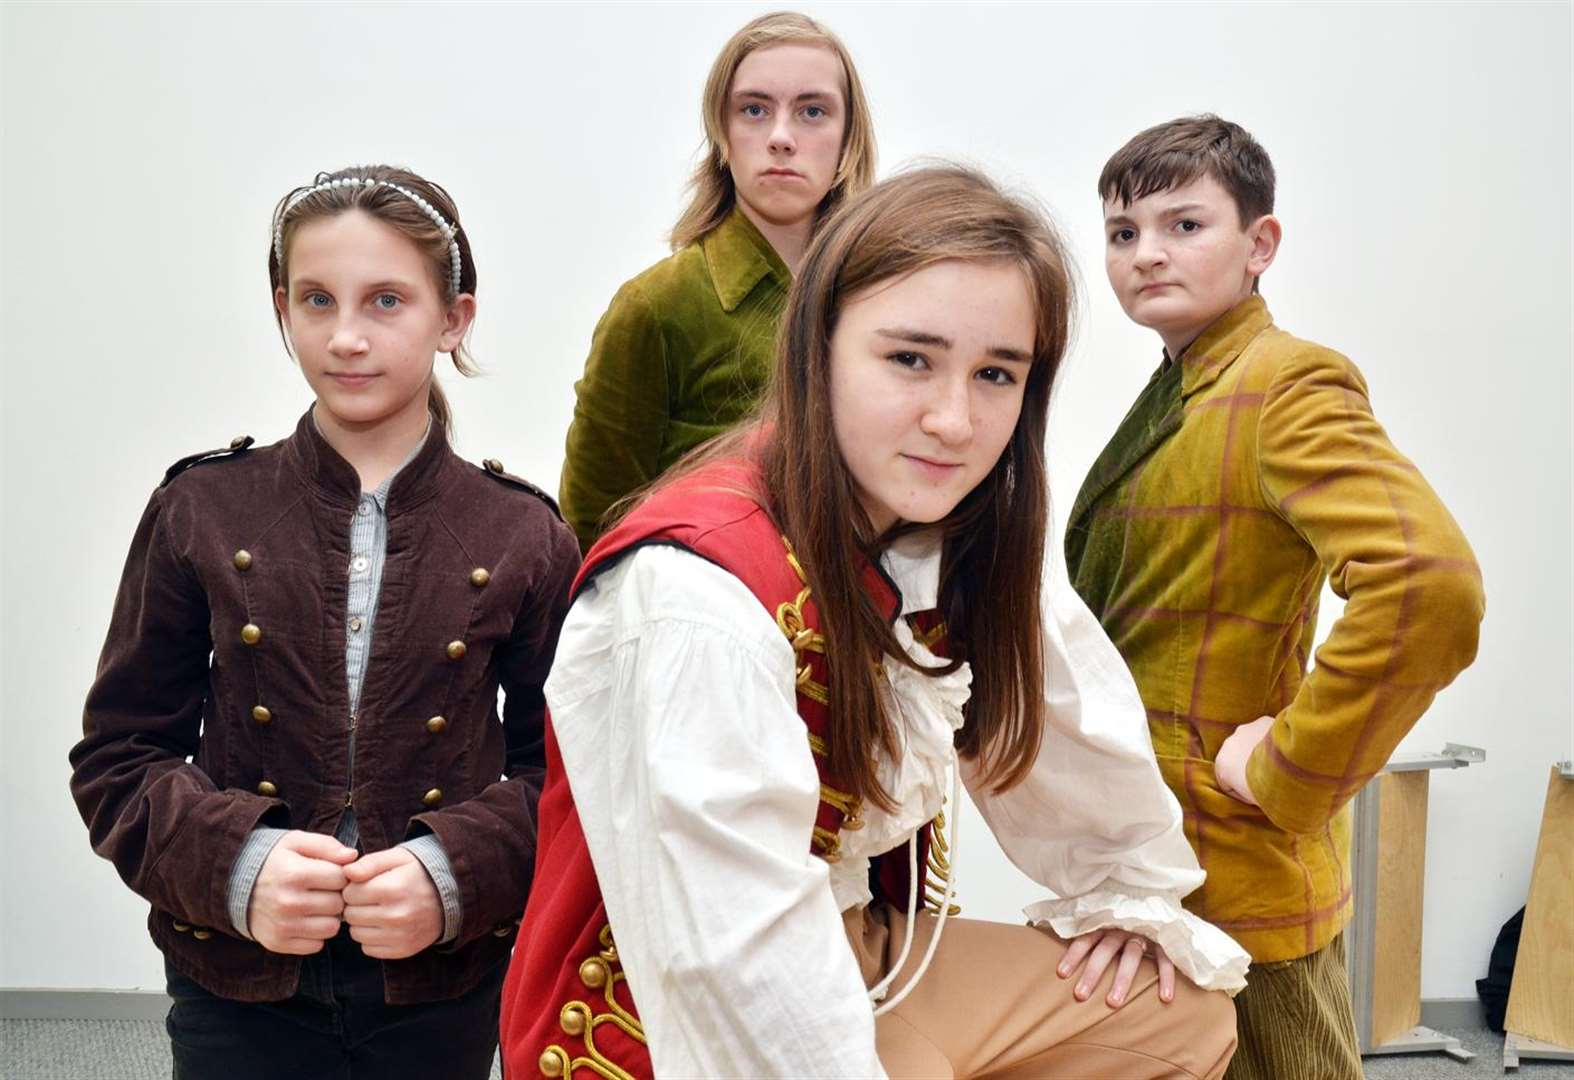 THEATRE REVIEW: Holbeach students make French connection and soar to set gold standard for school dramas